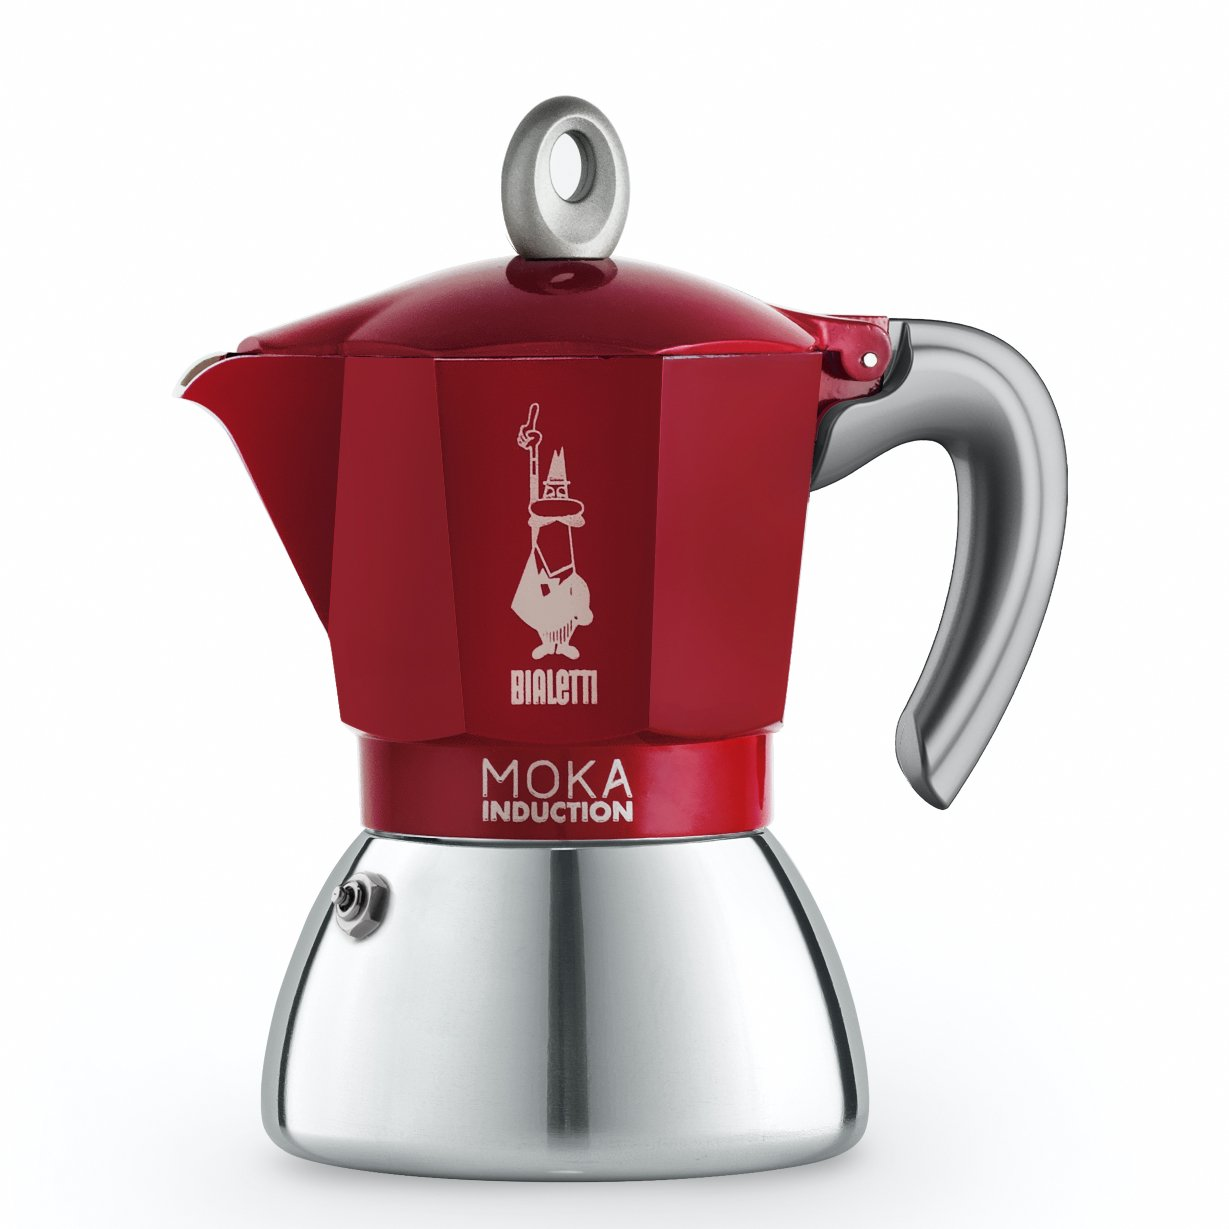 Bialetti - Moka Induction Edition 2.0 - 6 Cups - Red (6946)